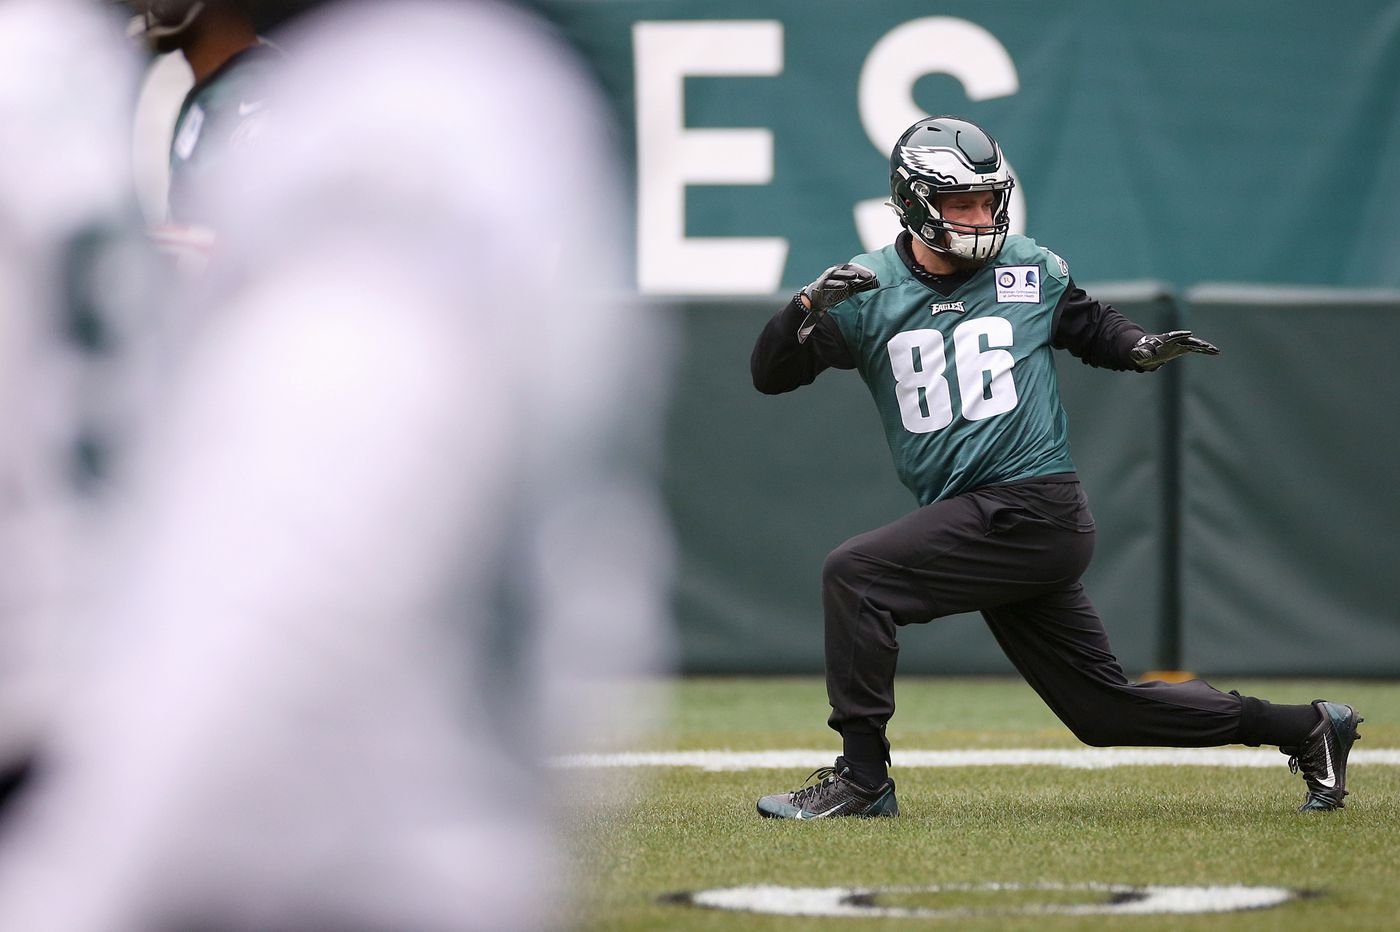 Zach Ertz cleared, so Eagles' leading receiver will dress Sunday against the Seahawks